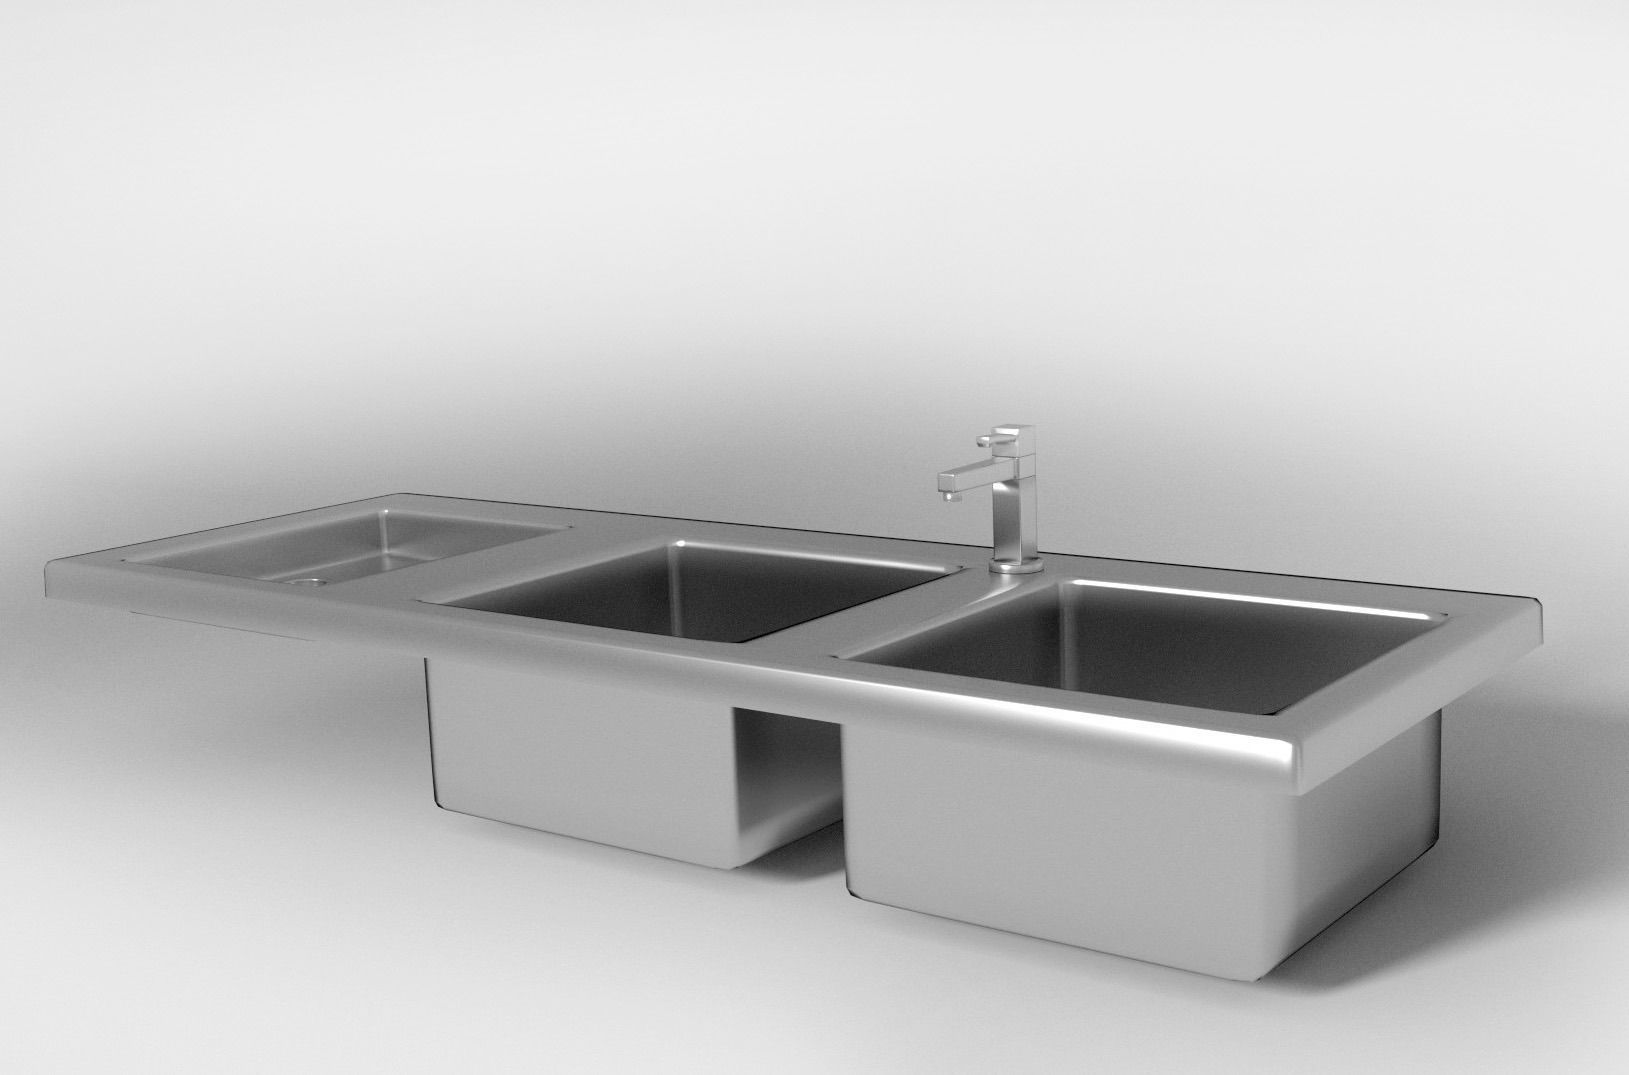 Sink Tap Modell : Kitchen sink and tap d model cgtrader